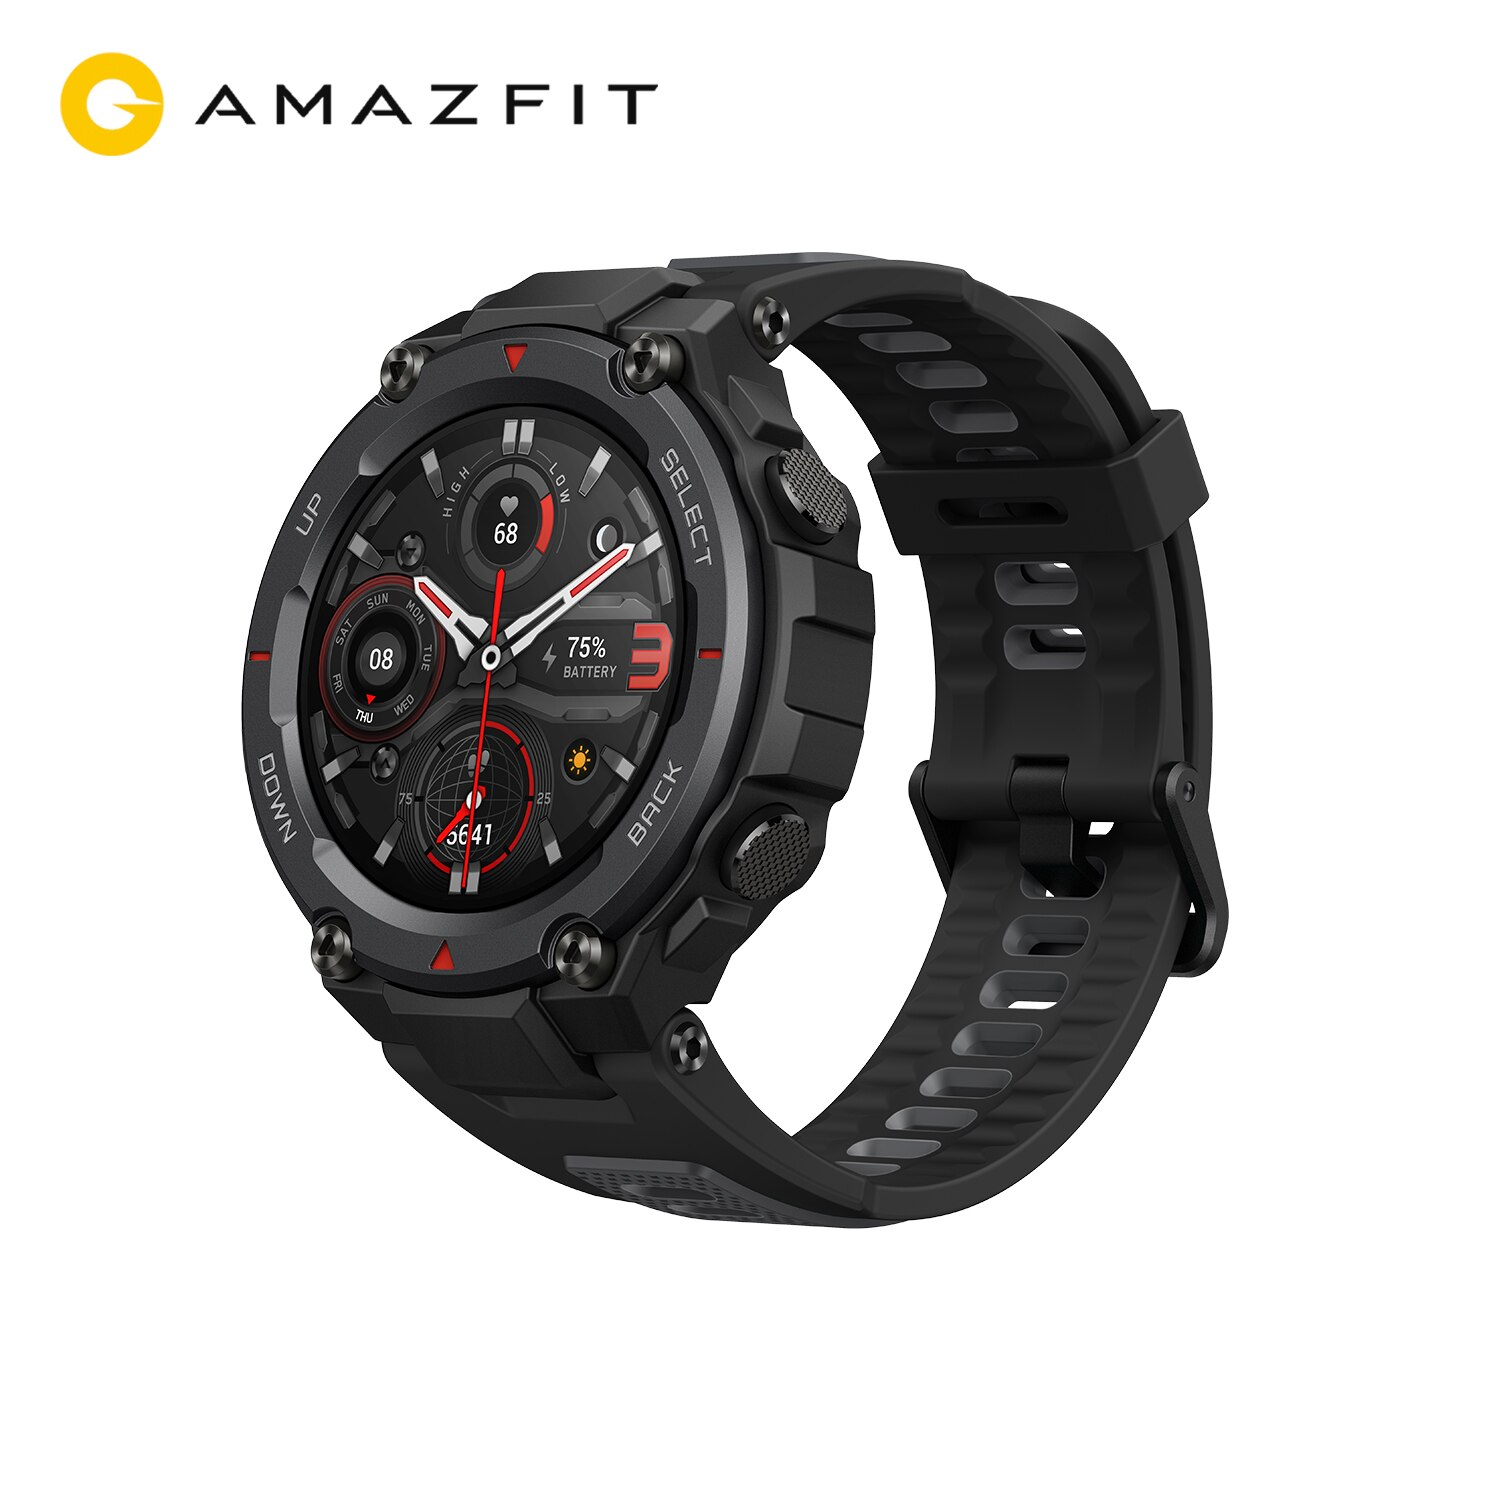 Review Amazfit T-rex Trex Pro T Rex GPS Waterproof Smartwatch Outdoor 18-day Battery Life 390mAh Smart Watch For Android iOS Phone